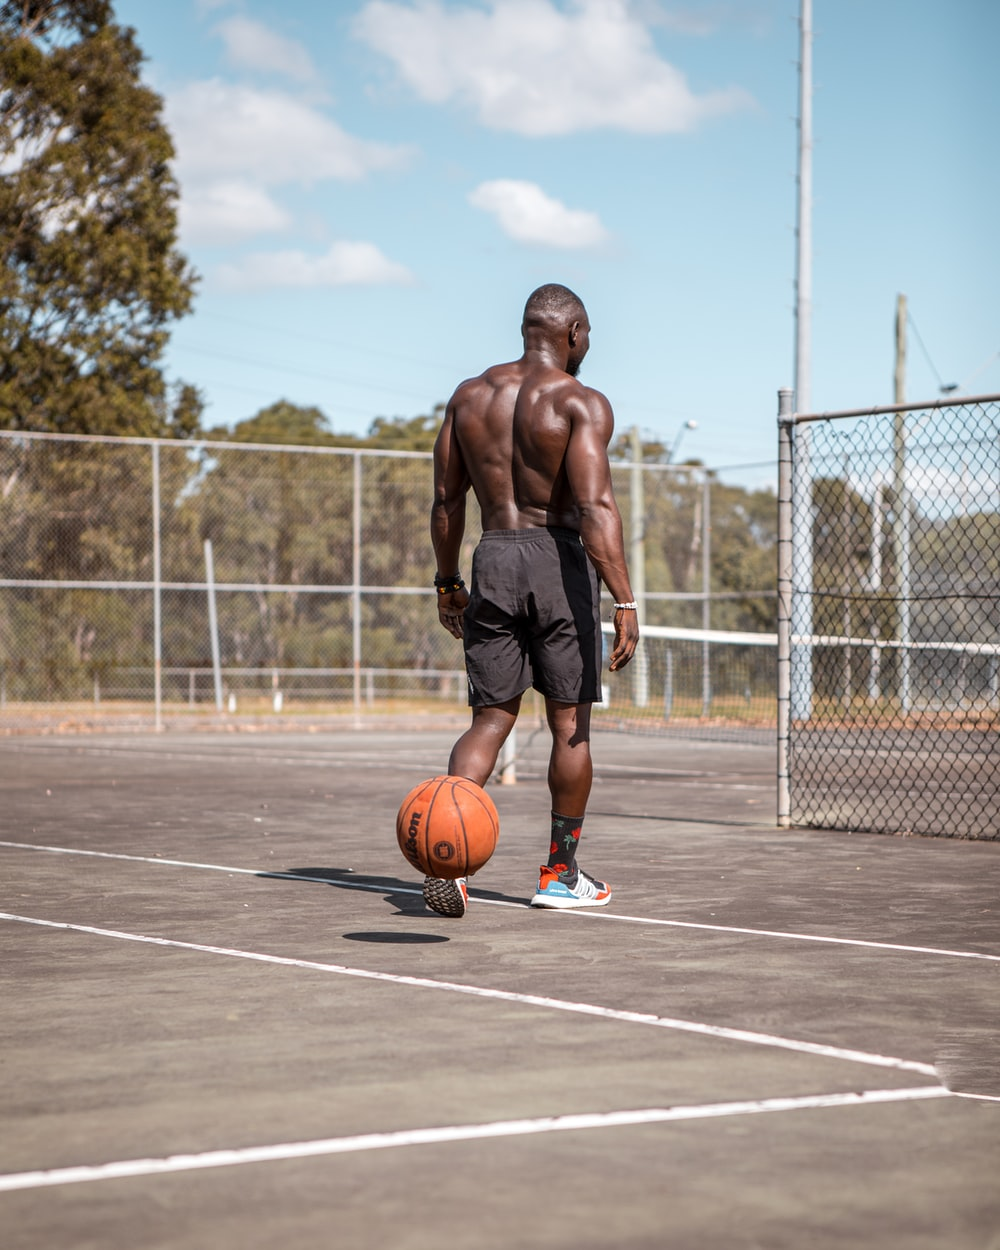 man in black shorts running on basketball court